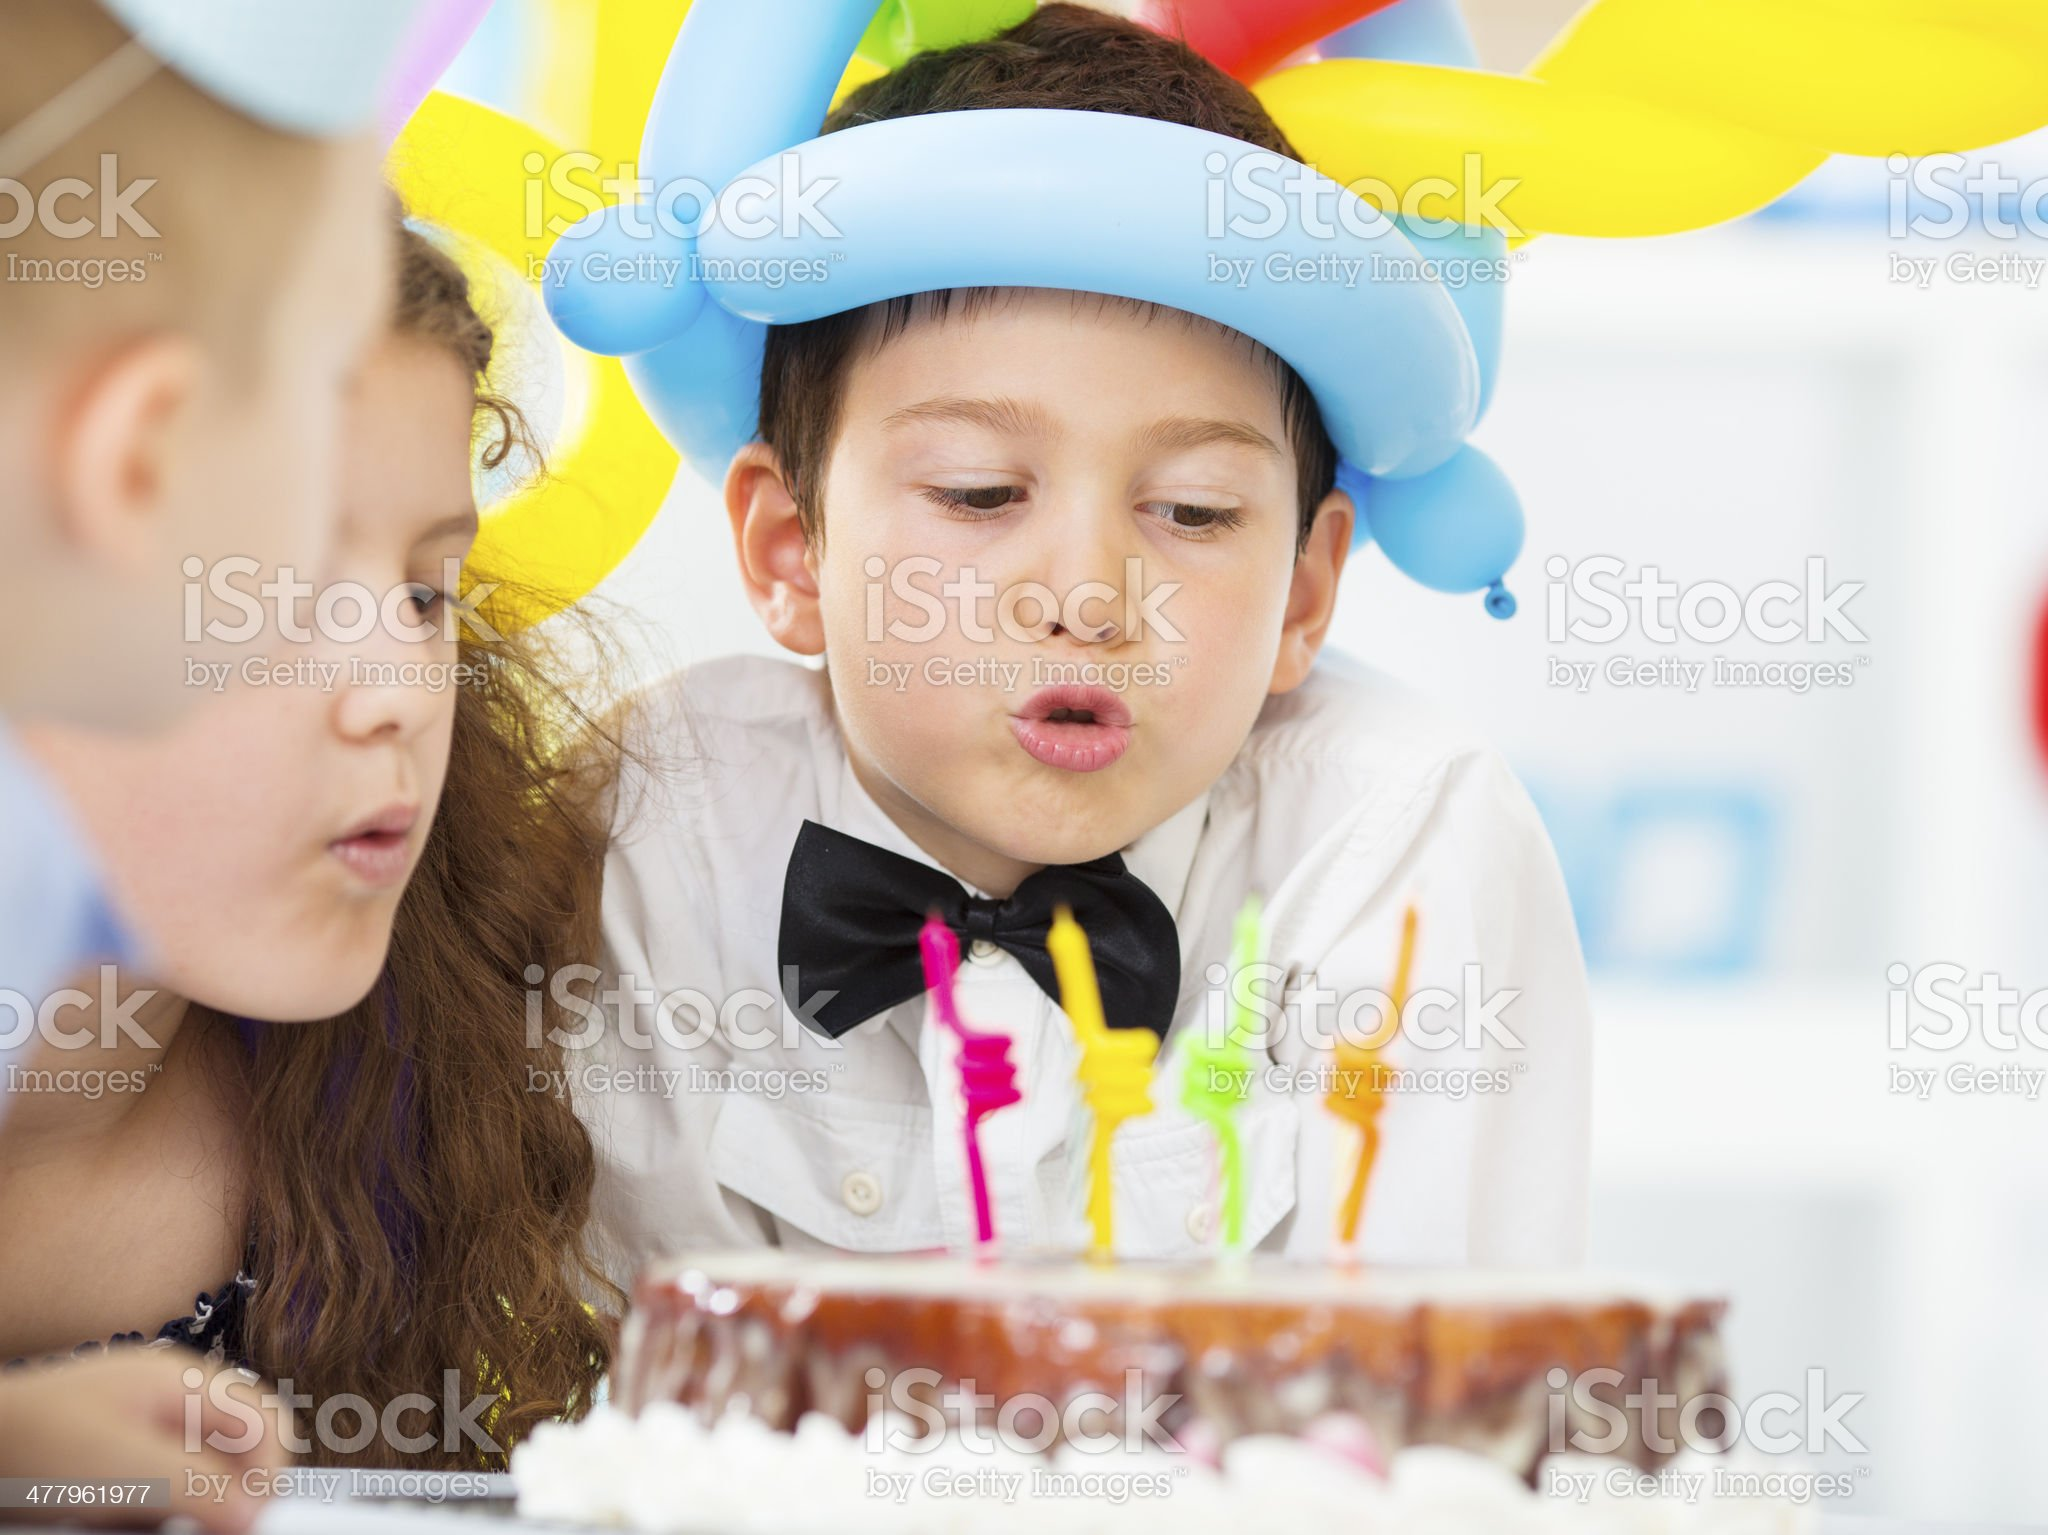 Cheerful Children Blowing Birthday Candles. royalty-free stock photo